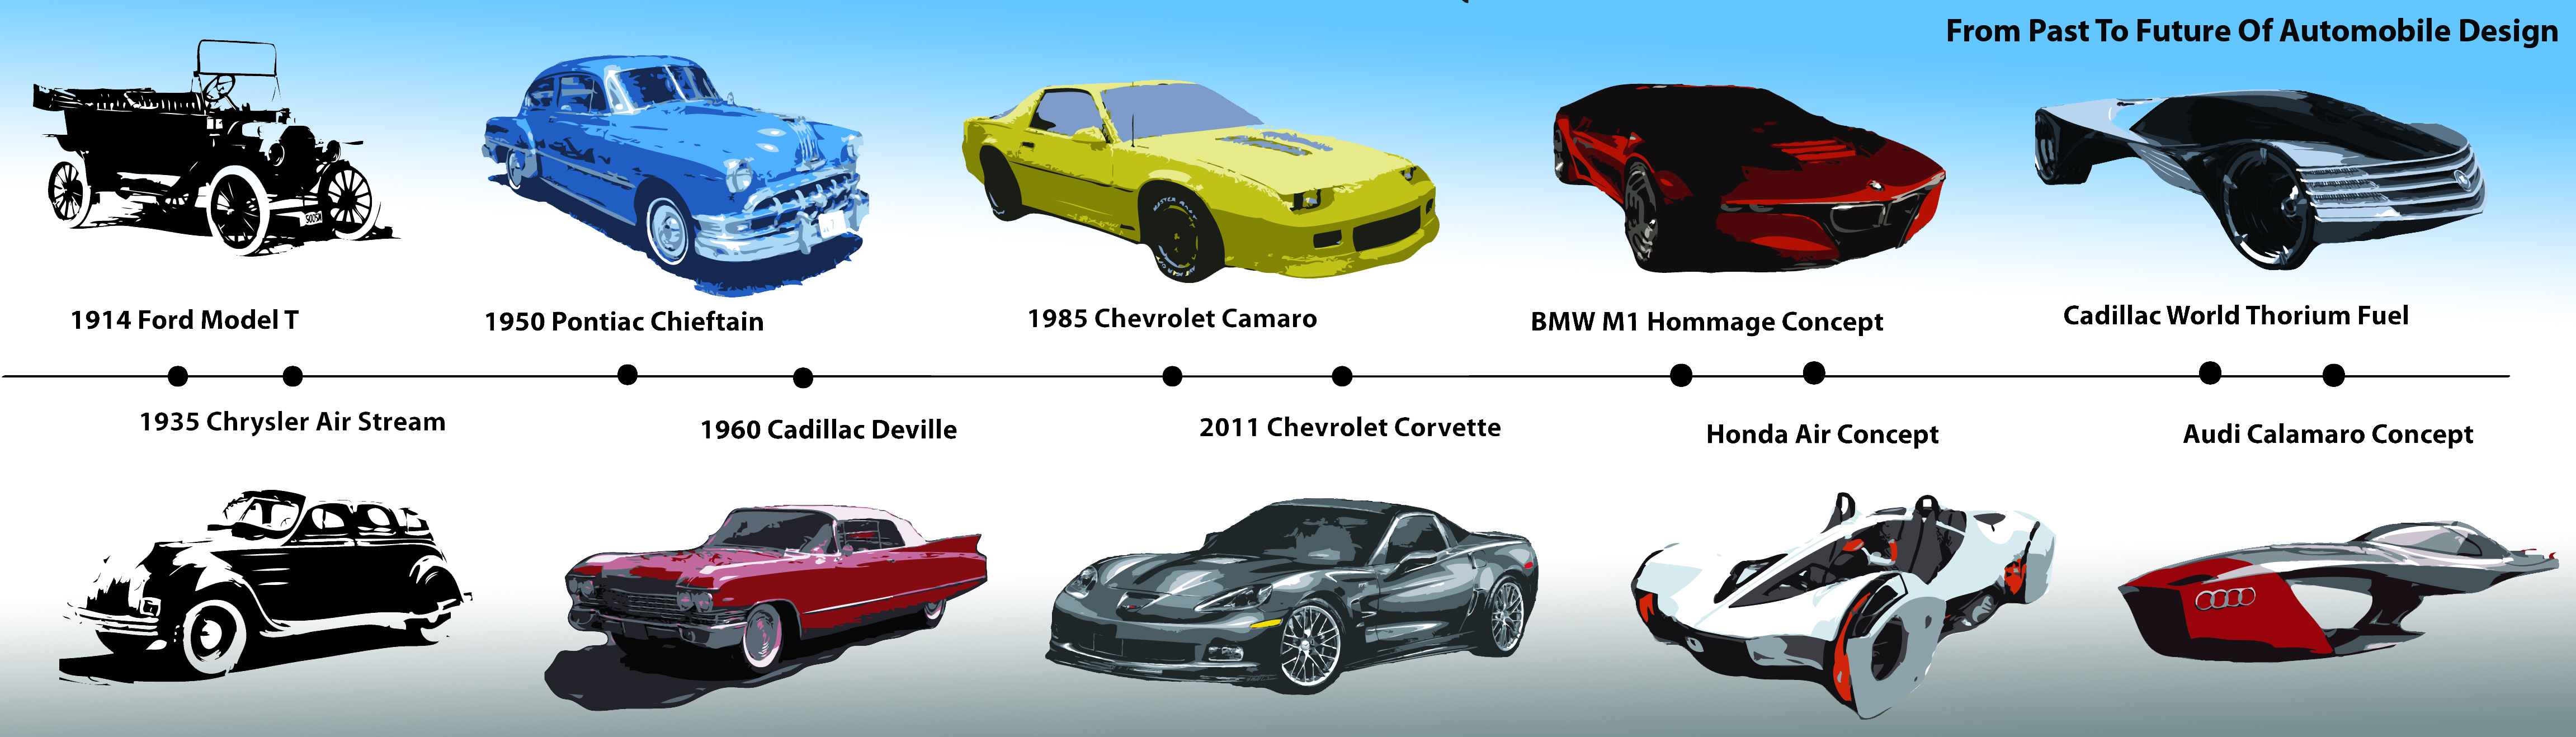 This Shows The Evolution Of Cars From Our First Ford Mode